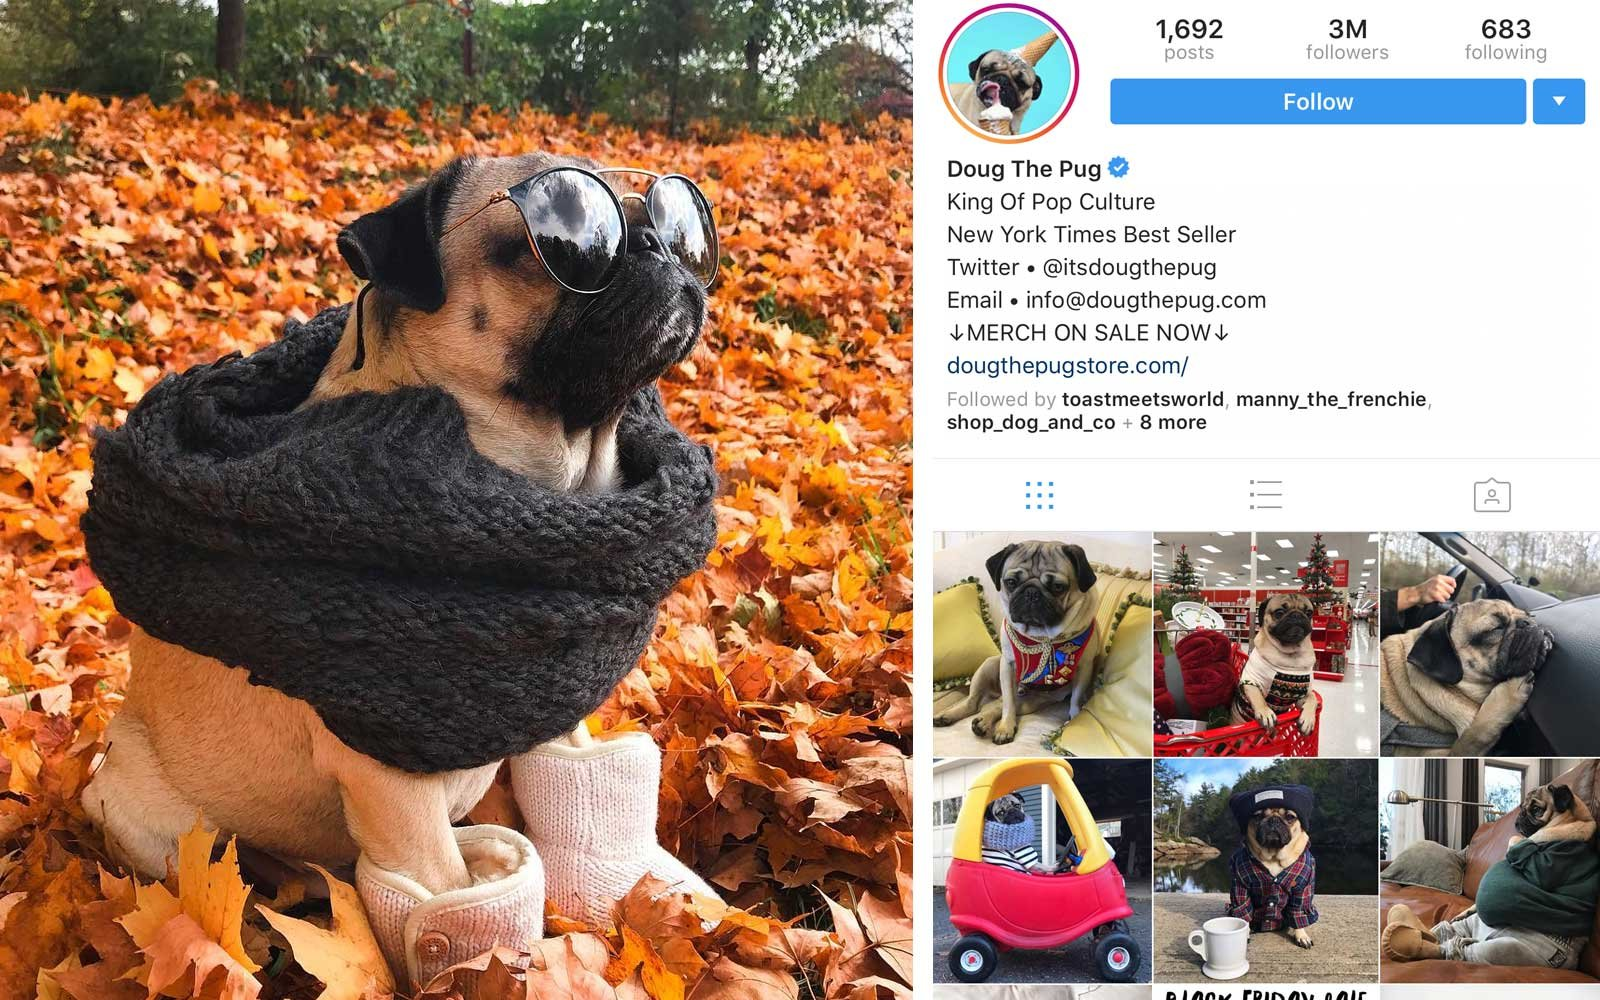 Doug the Pug (@itsdougthepug) - Pug, US - 3M Followers